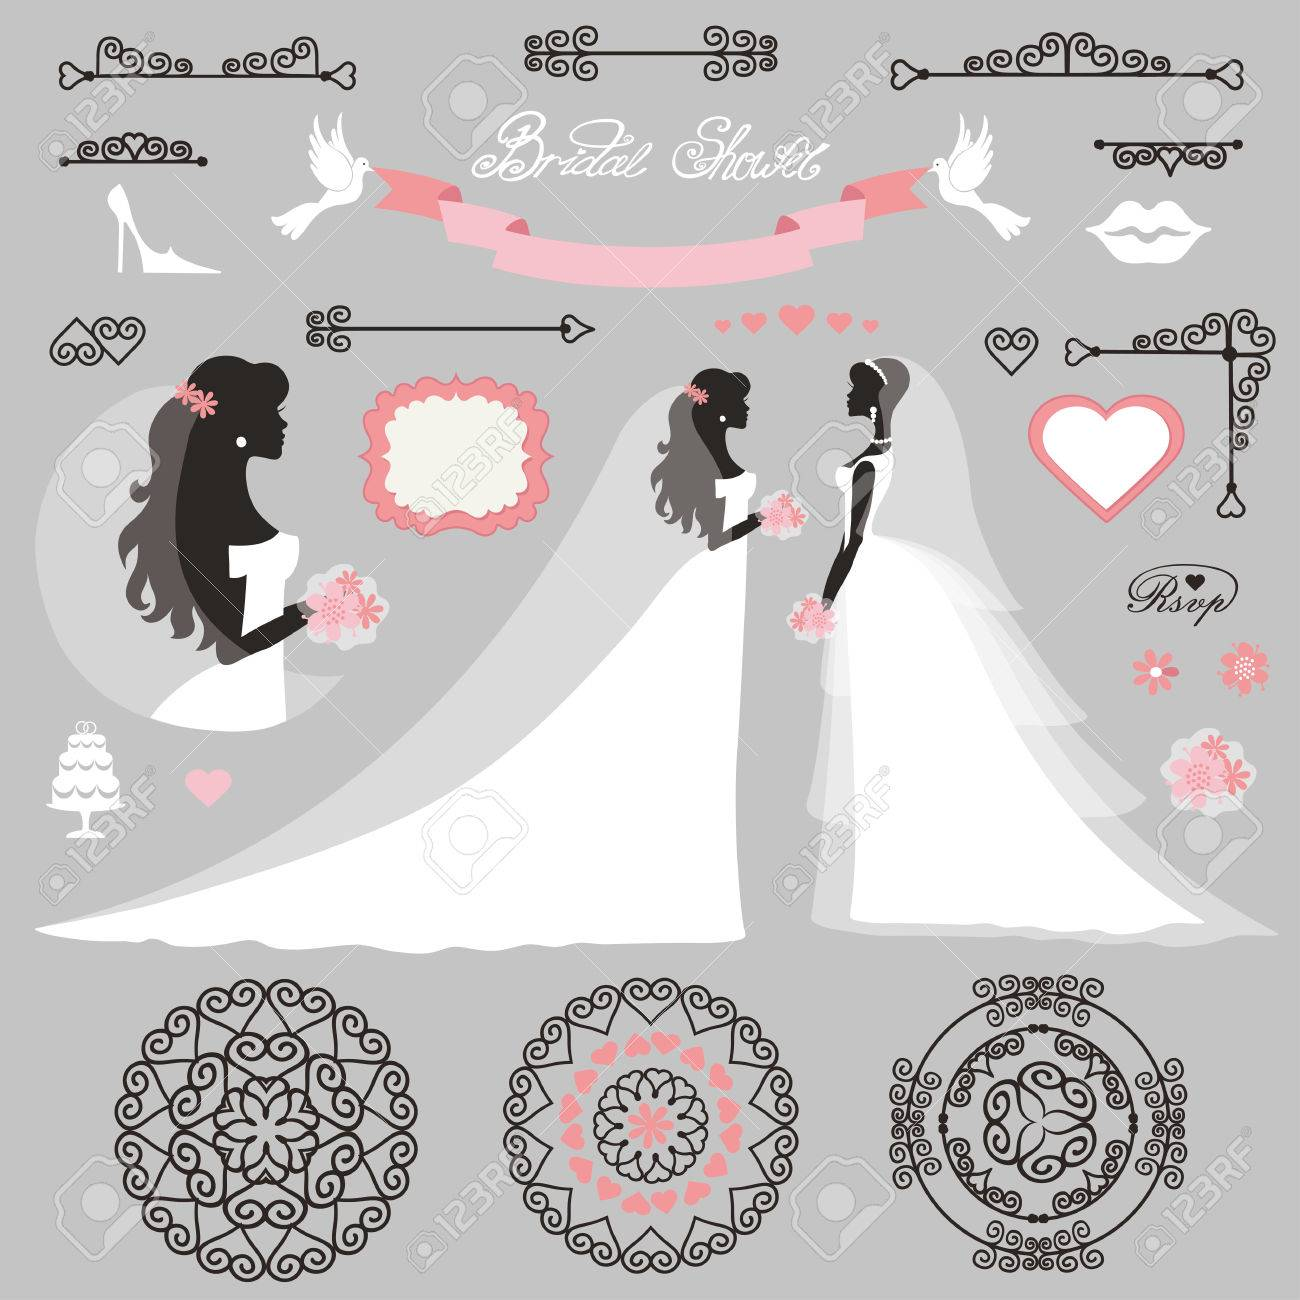 weddingbride in different dress stylebridal shower decor setcartoon woman silhouette